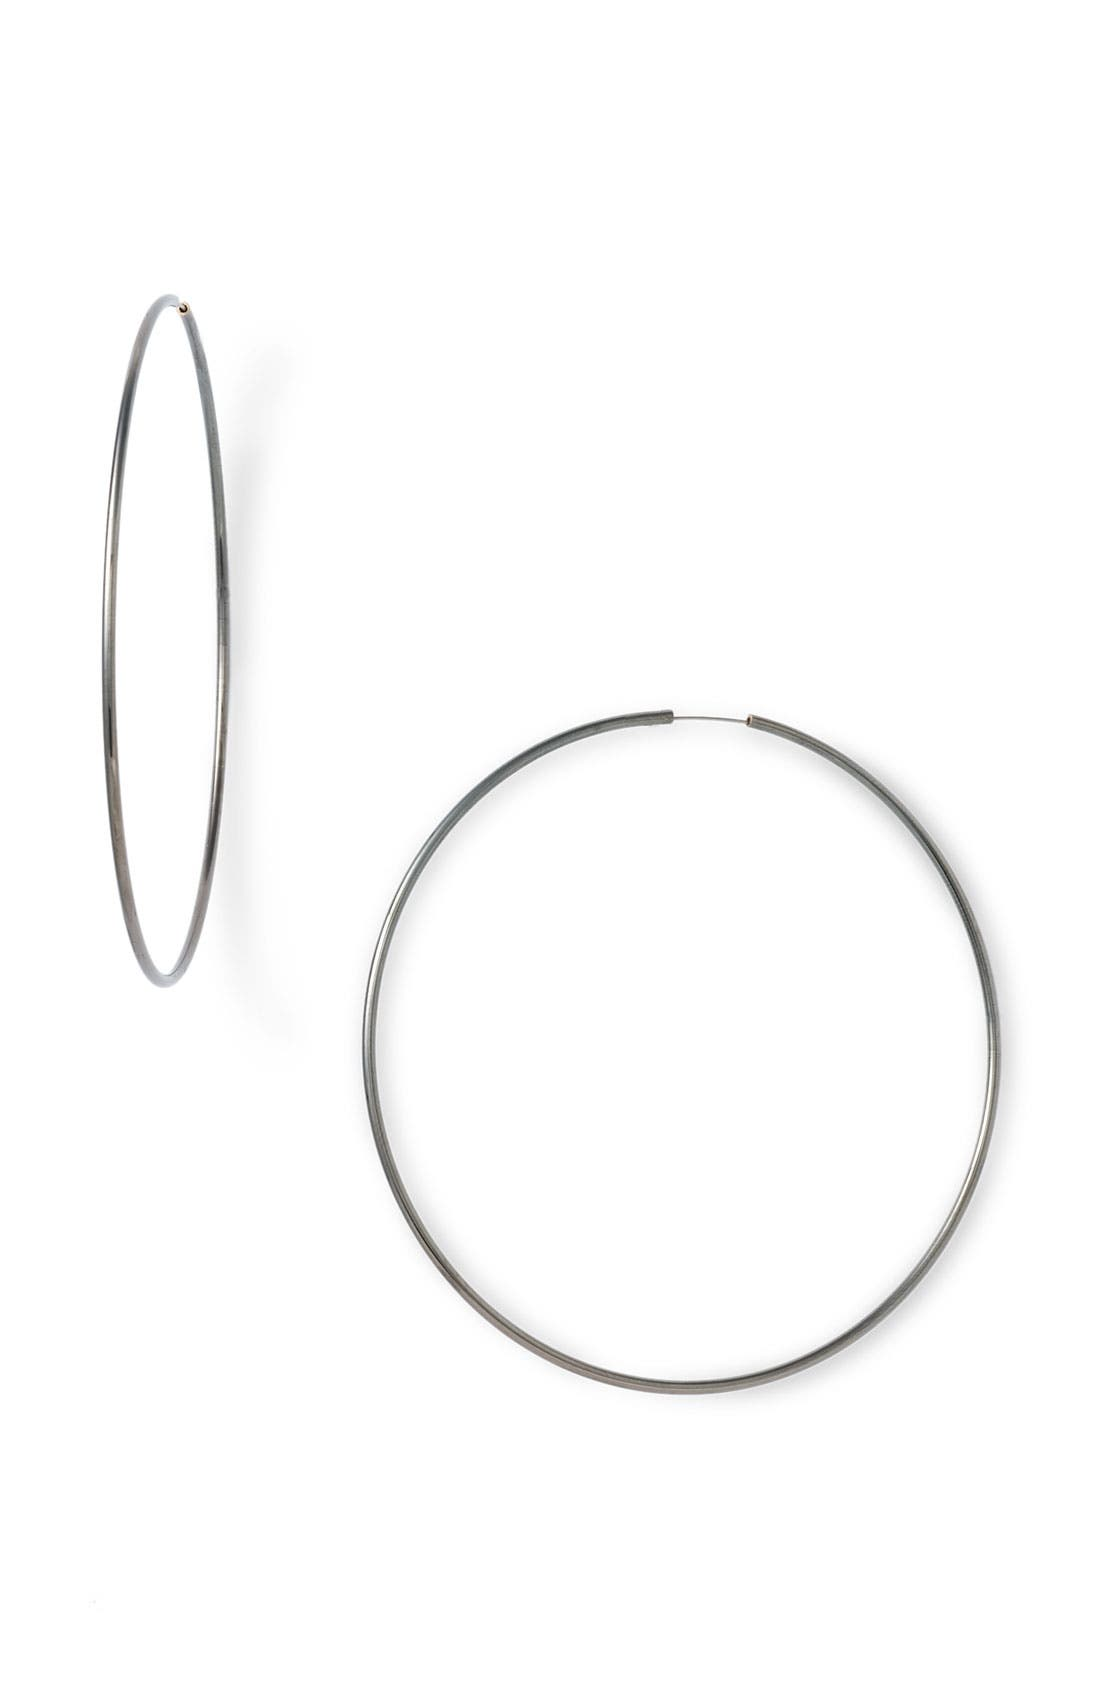 Endless Oversized Hoop Earrings,                             Main thumbnail 1, color,                             001